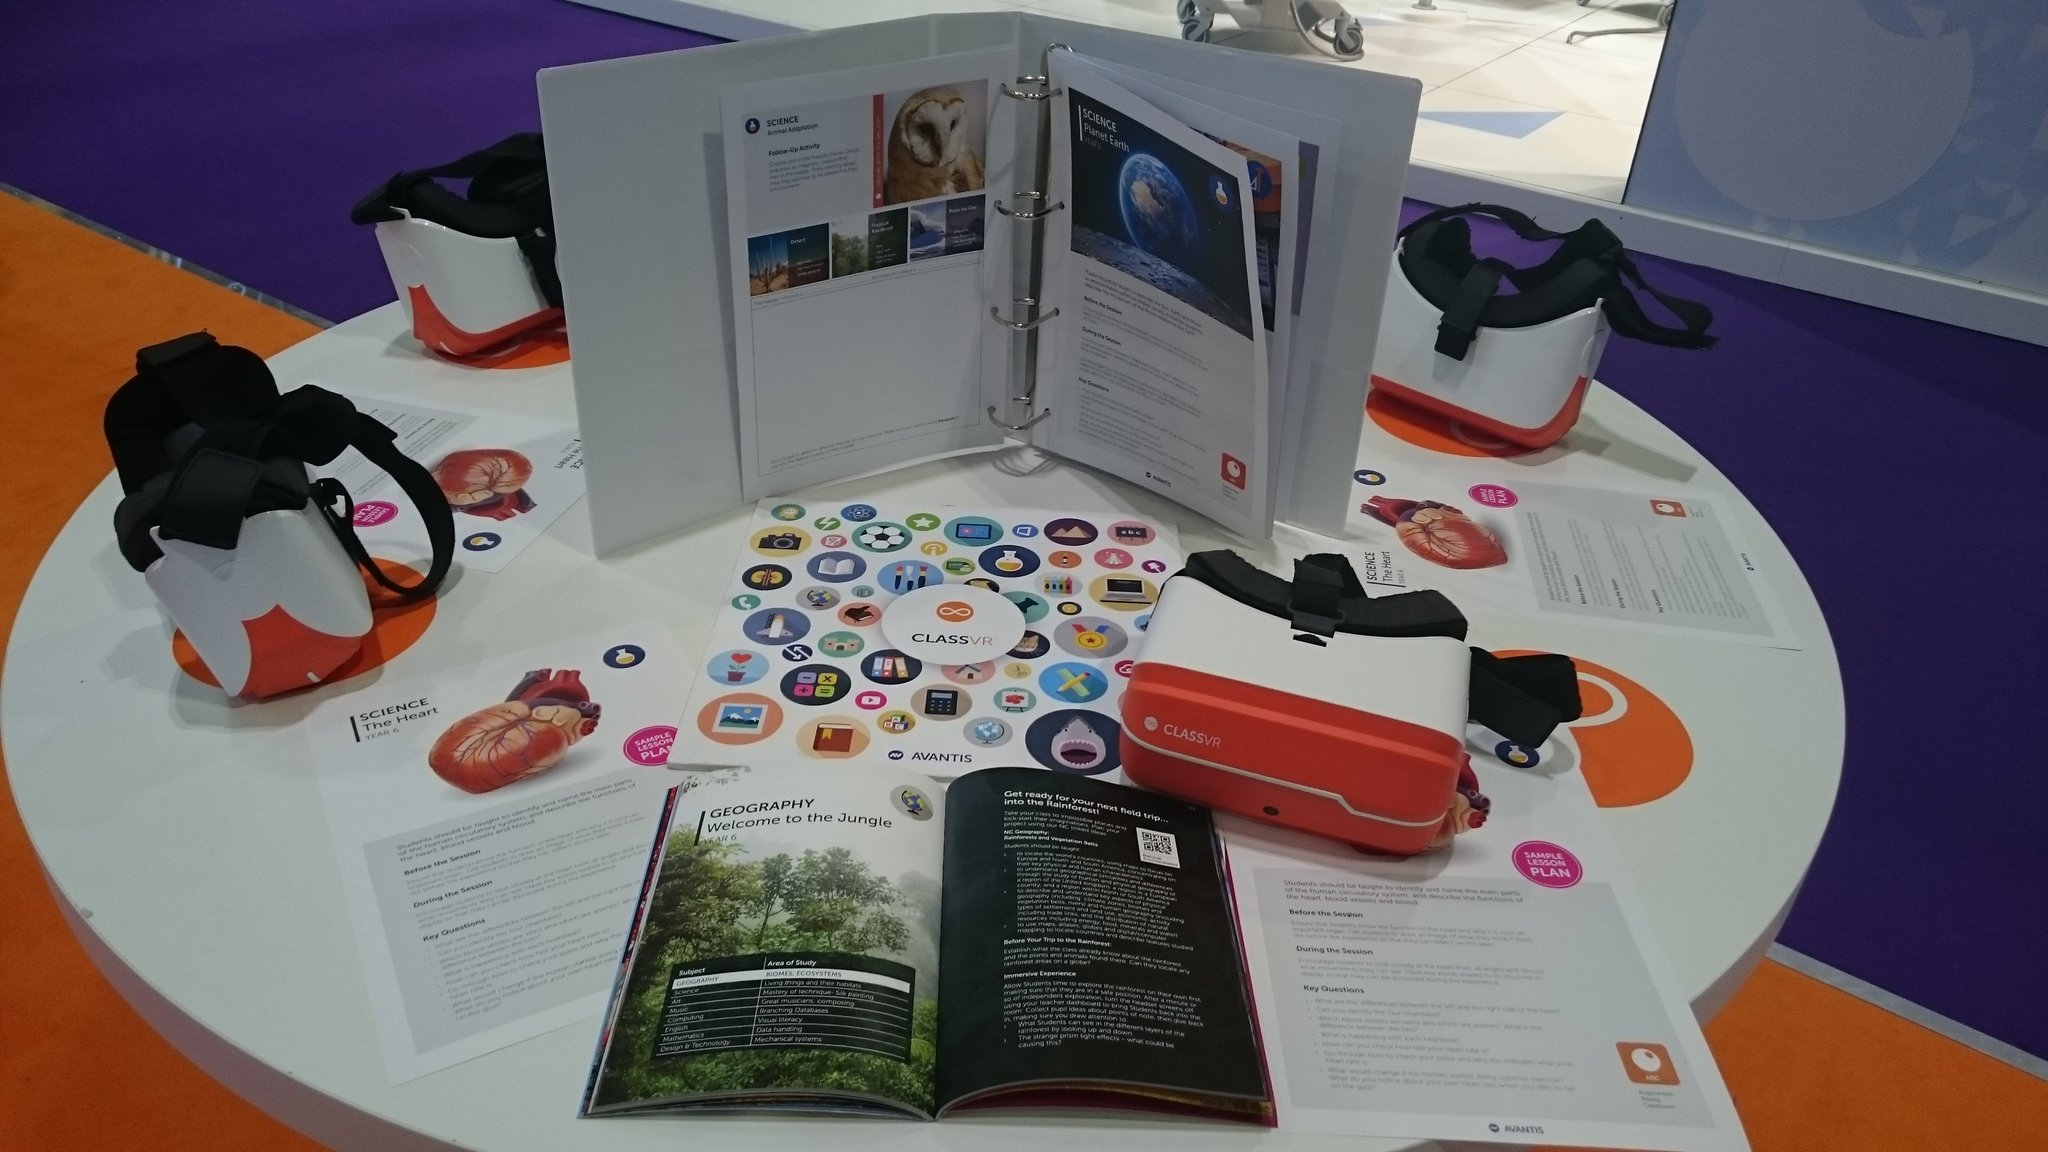 Pedagogically sound activities & lesson plans, equipping teachers with everything they need to introduce #VR #AR into classrooms #Bett2017 https://t.co/aRwnDtNZ41